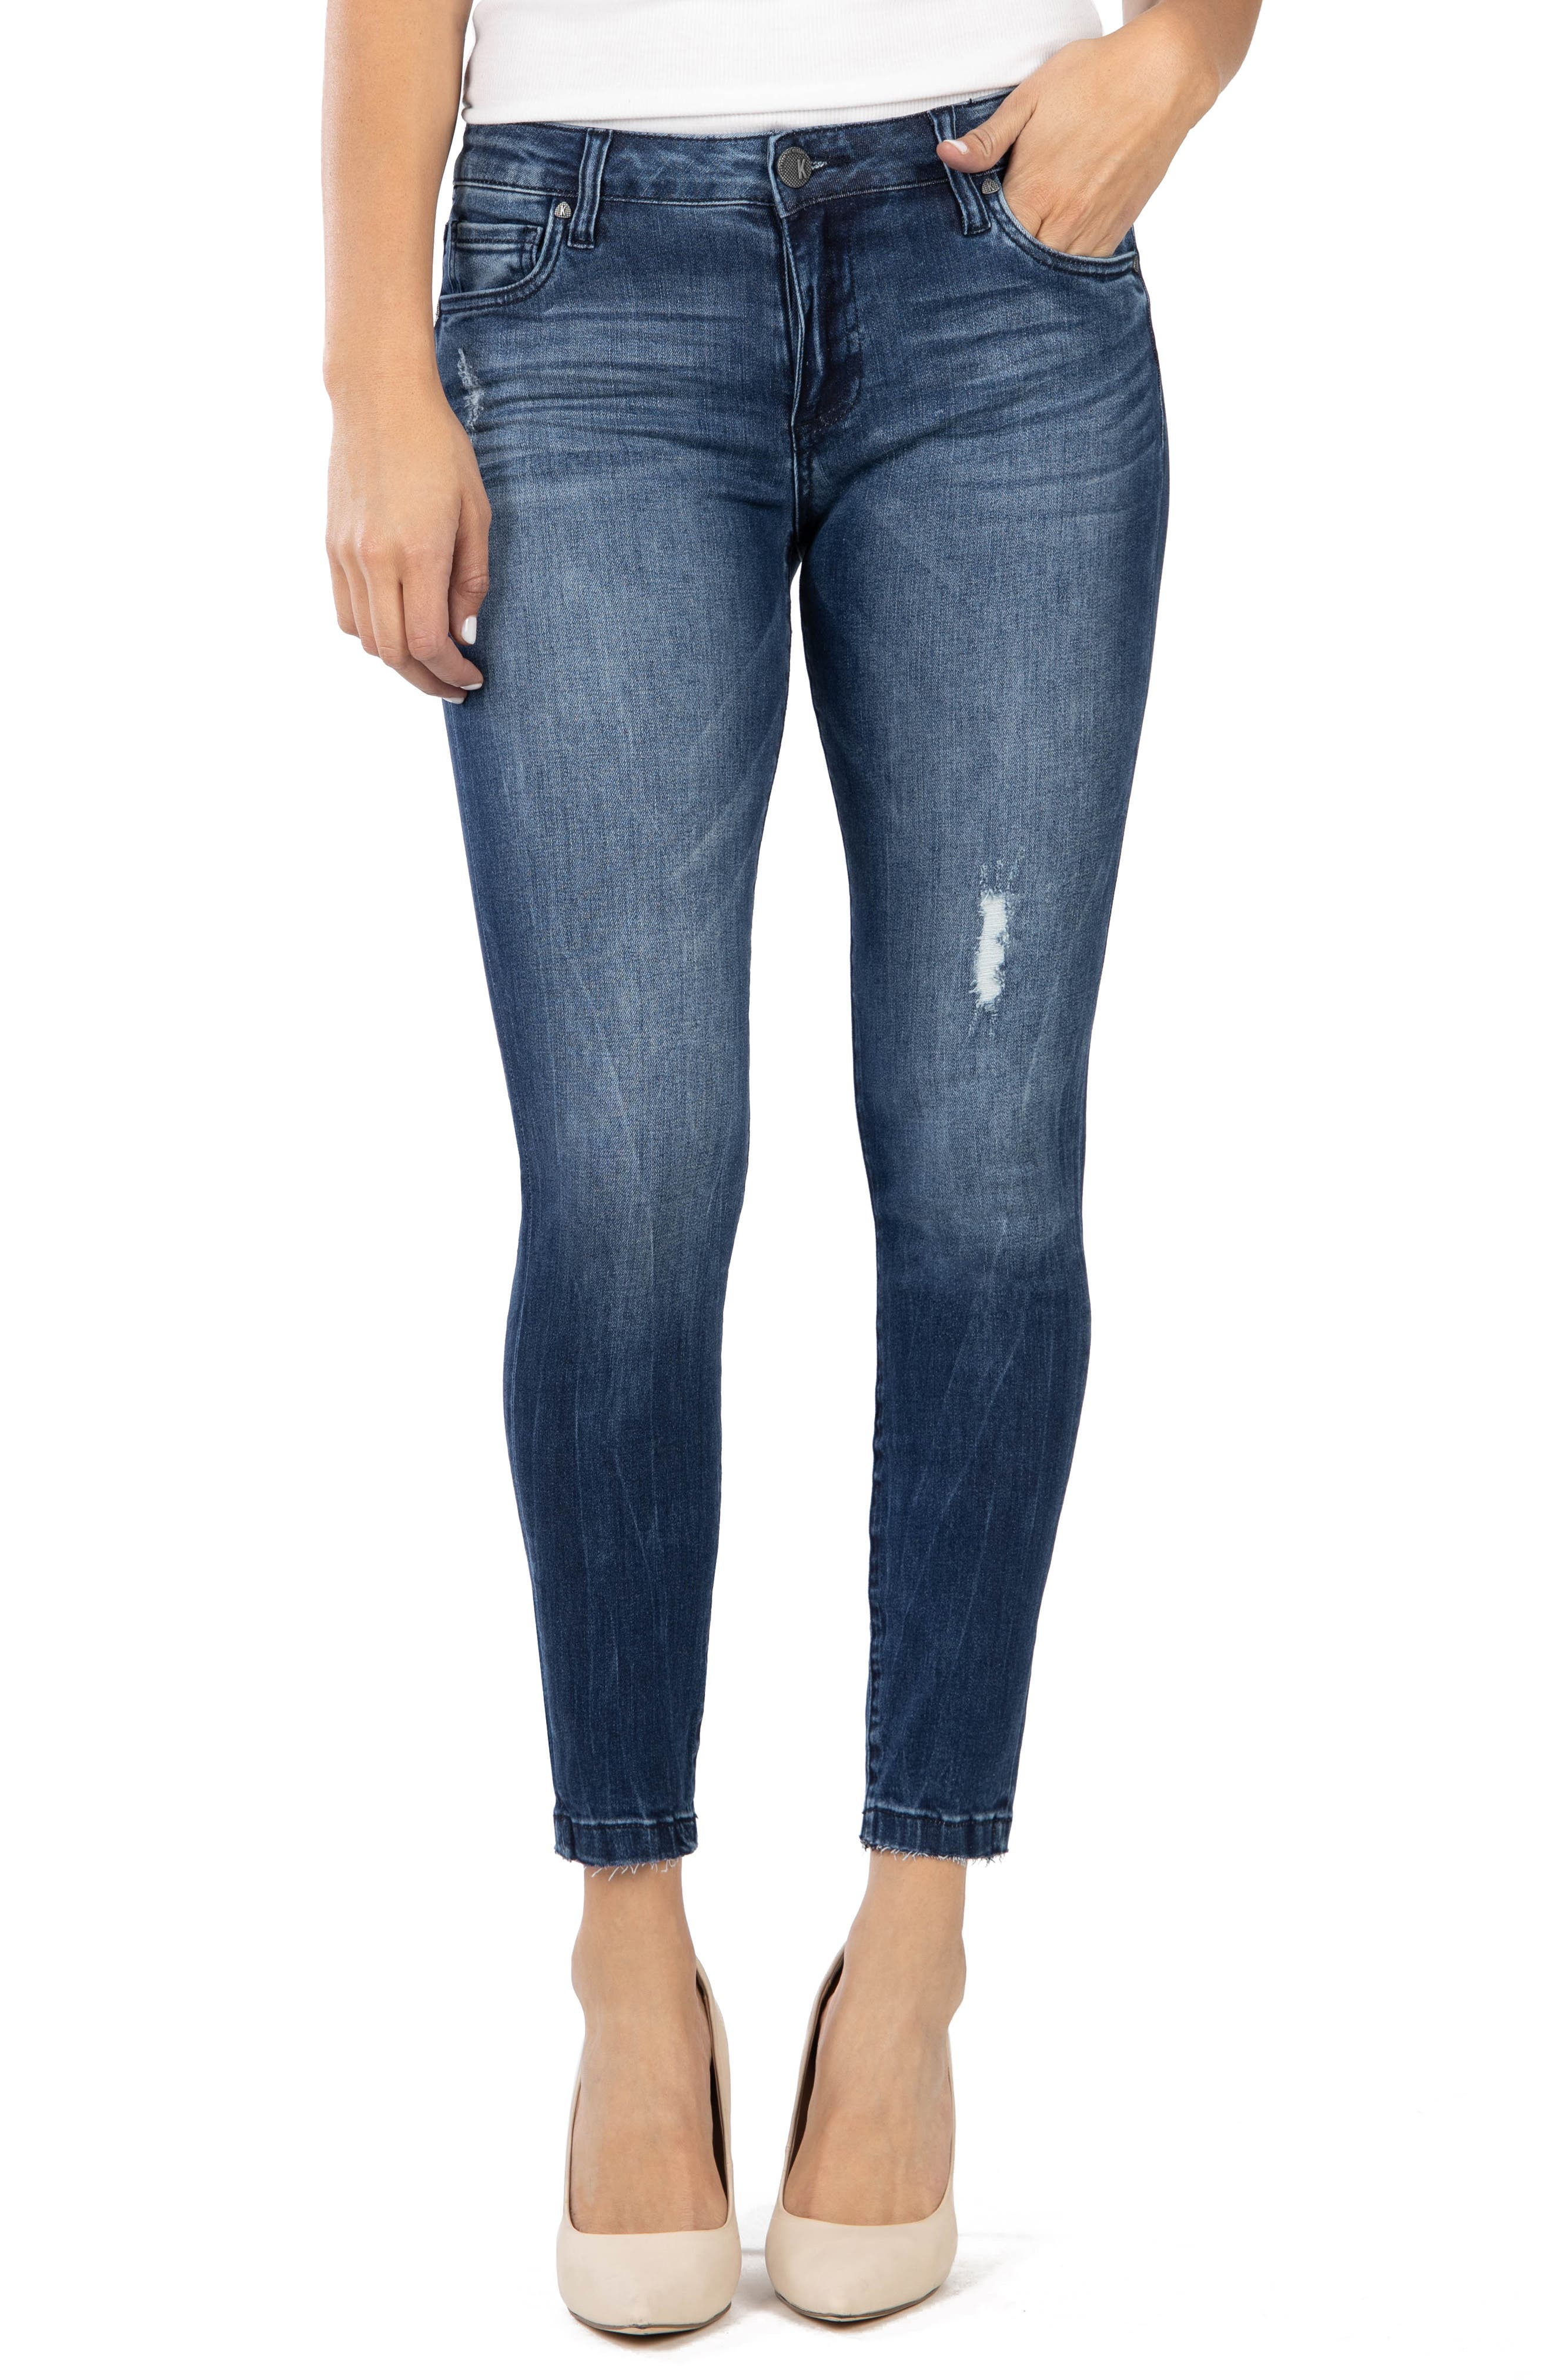 KUT from the Kloth Donna Ankle Skinny Jeans (Daydream) (Regular & Petite)